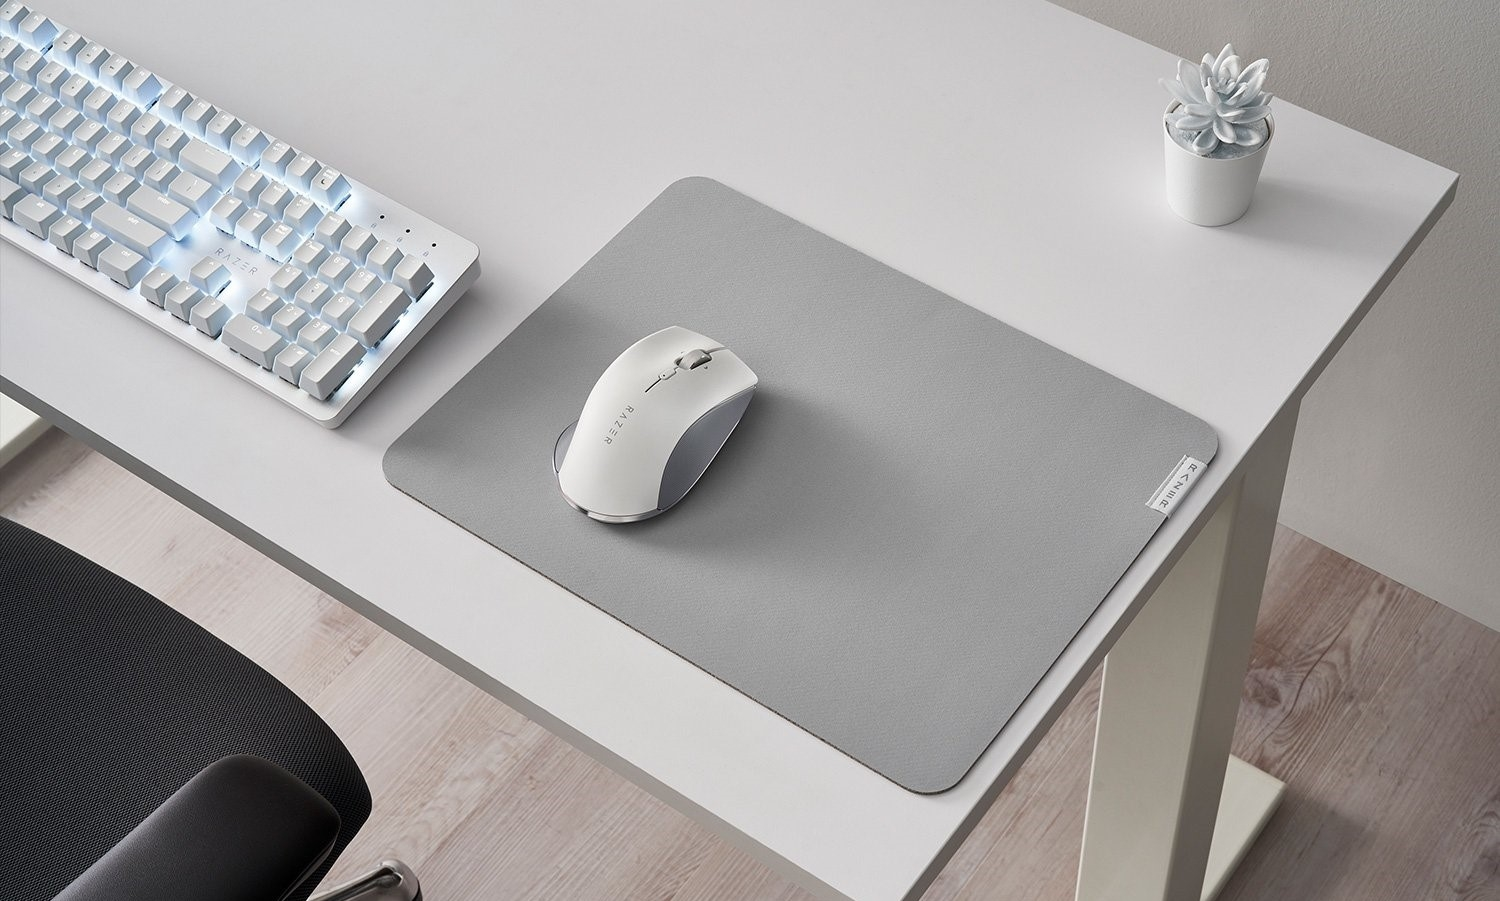 Razer made a dull keyboard and mouse for working from home | DeviceDaily.com